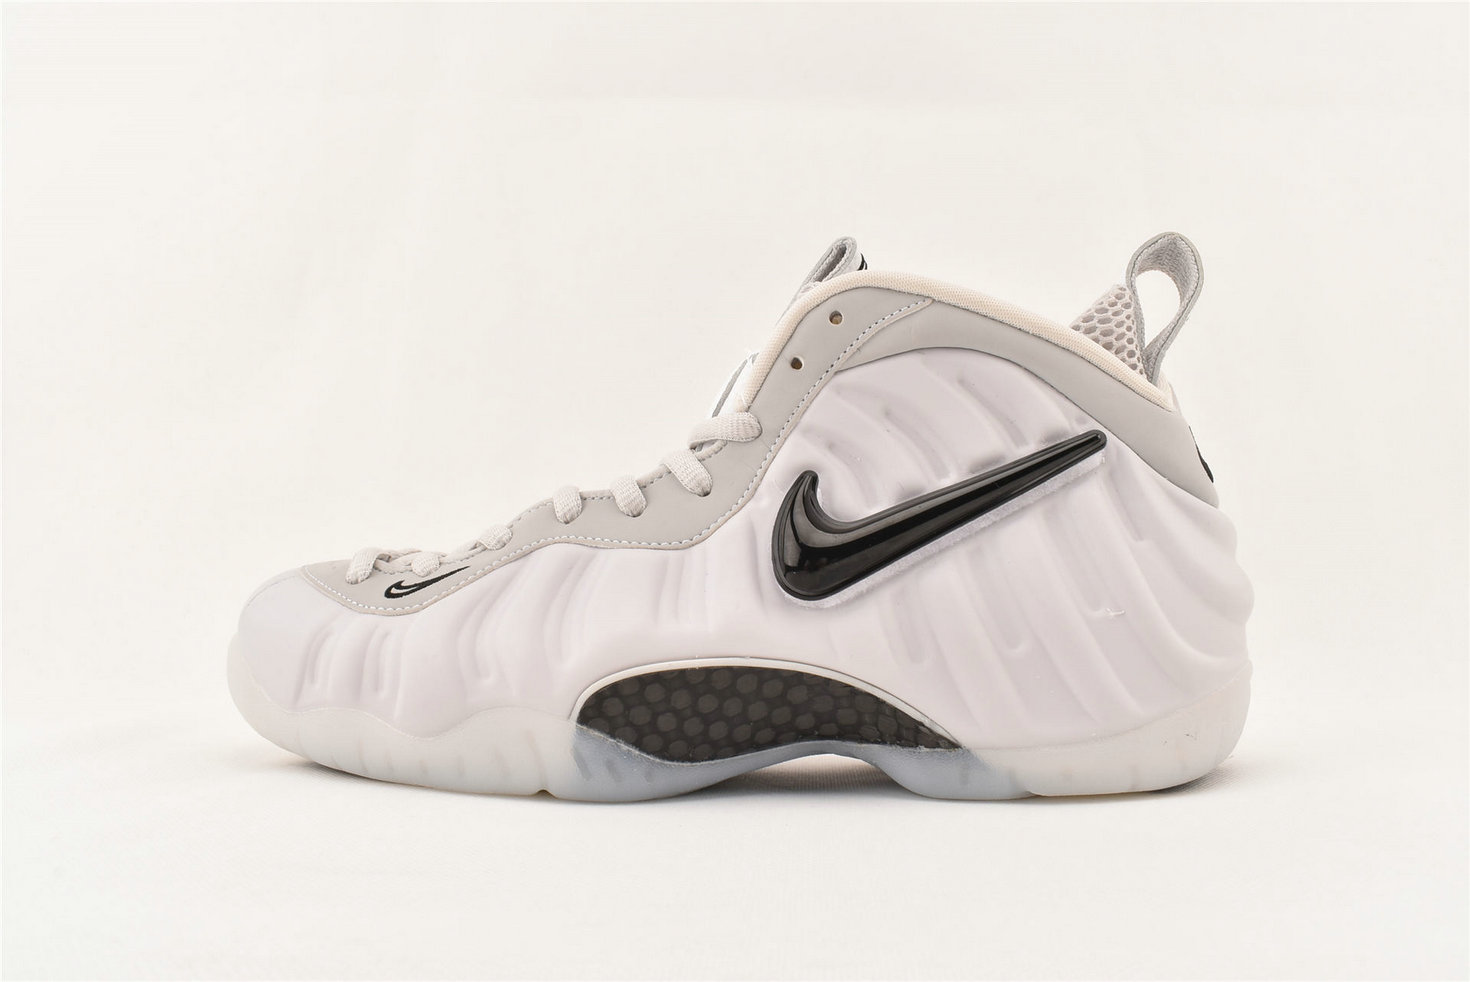 Where To Buy Wholesale Cheap Nike Air Foamposite Pro AS QS All Star Swoosh Pack AO0817 001 - www.wholesaleflyknit.com